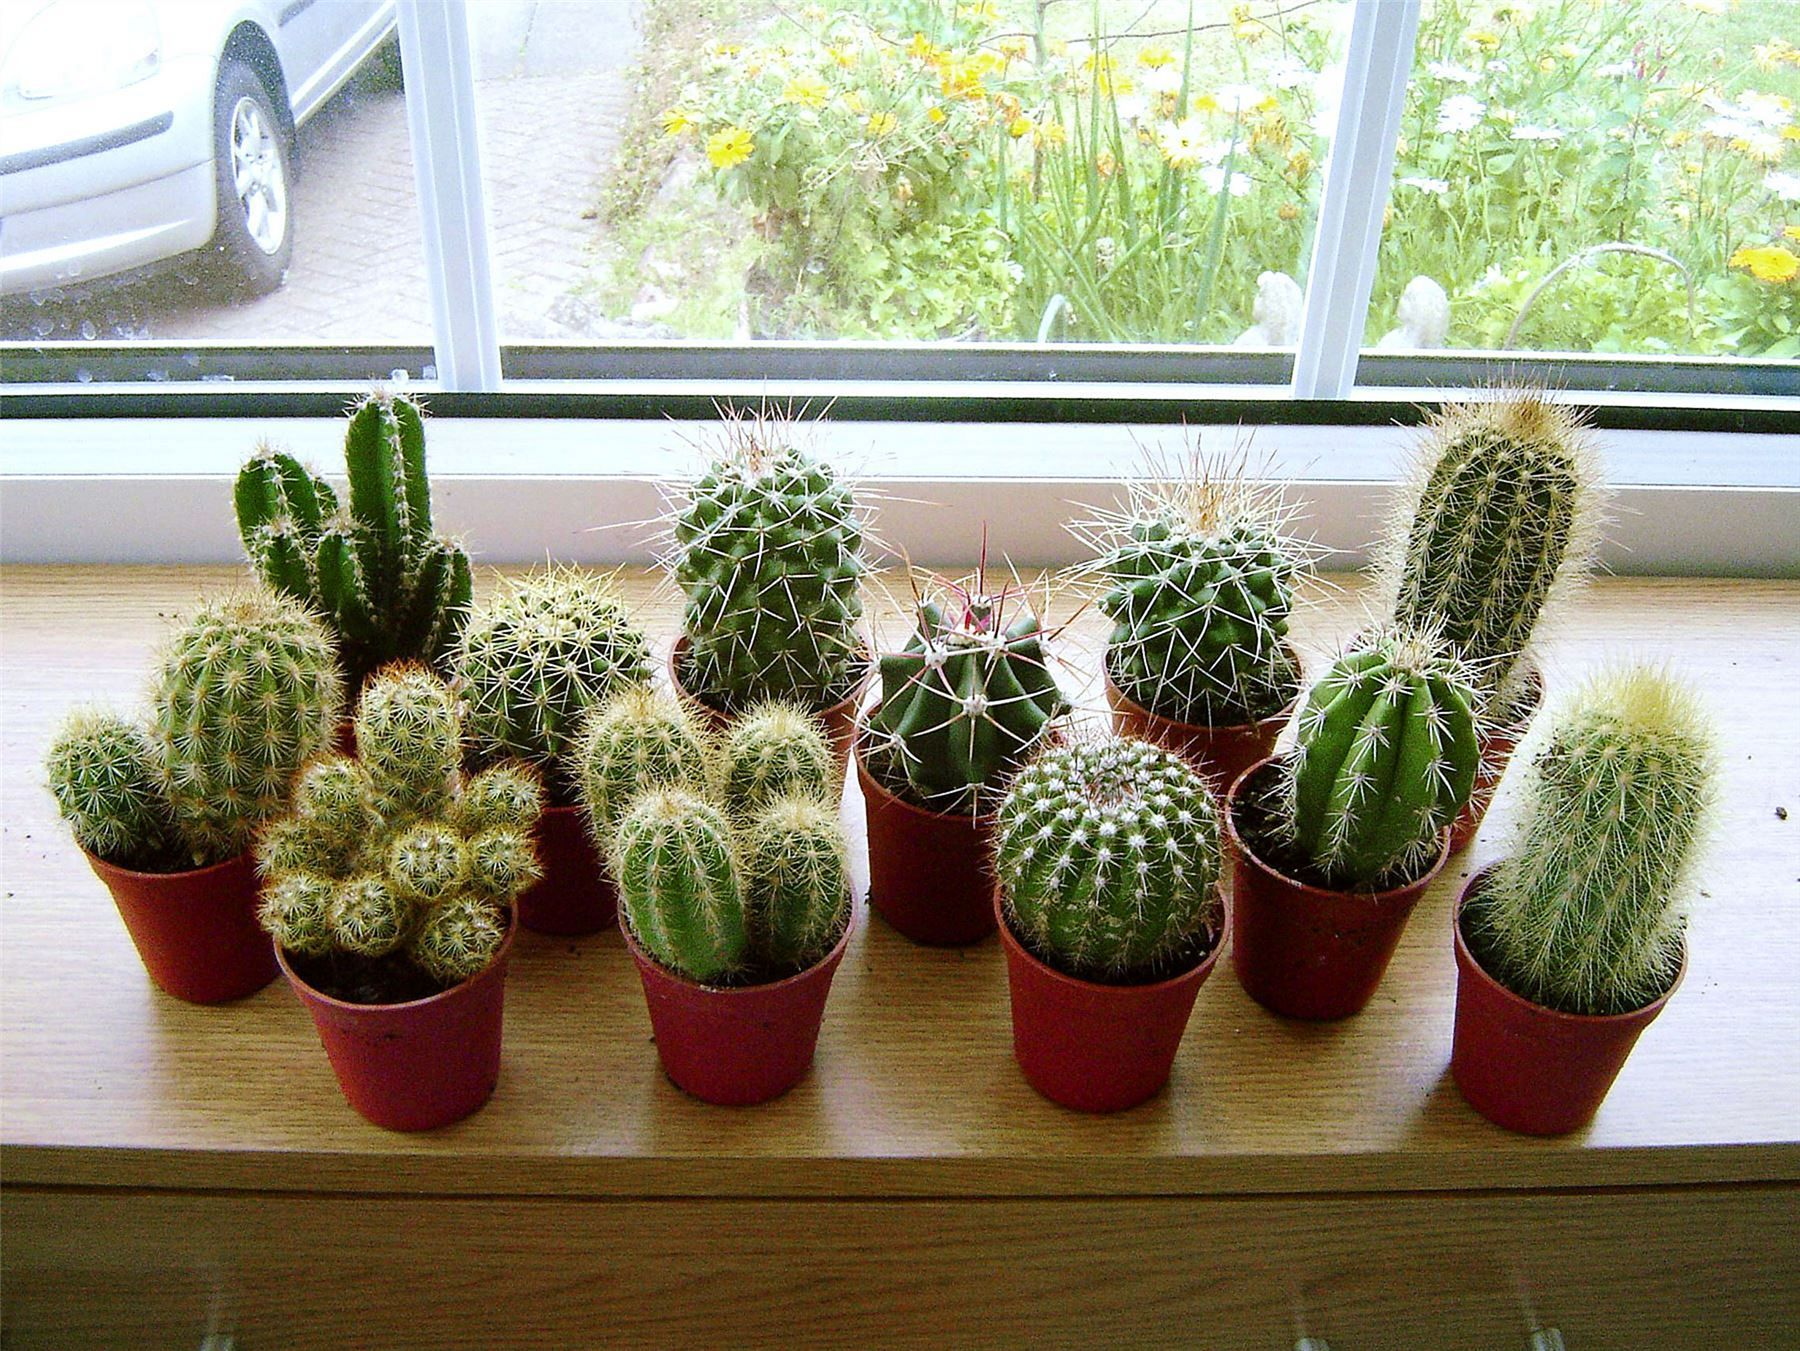 23 Stunning Indoor Cactus Plants In Pots Ideas Freshouz Com Indoor Cactus Indoor Cactus Plants Indoor Plants